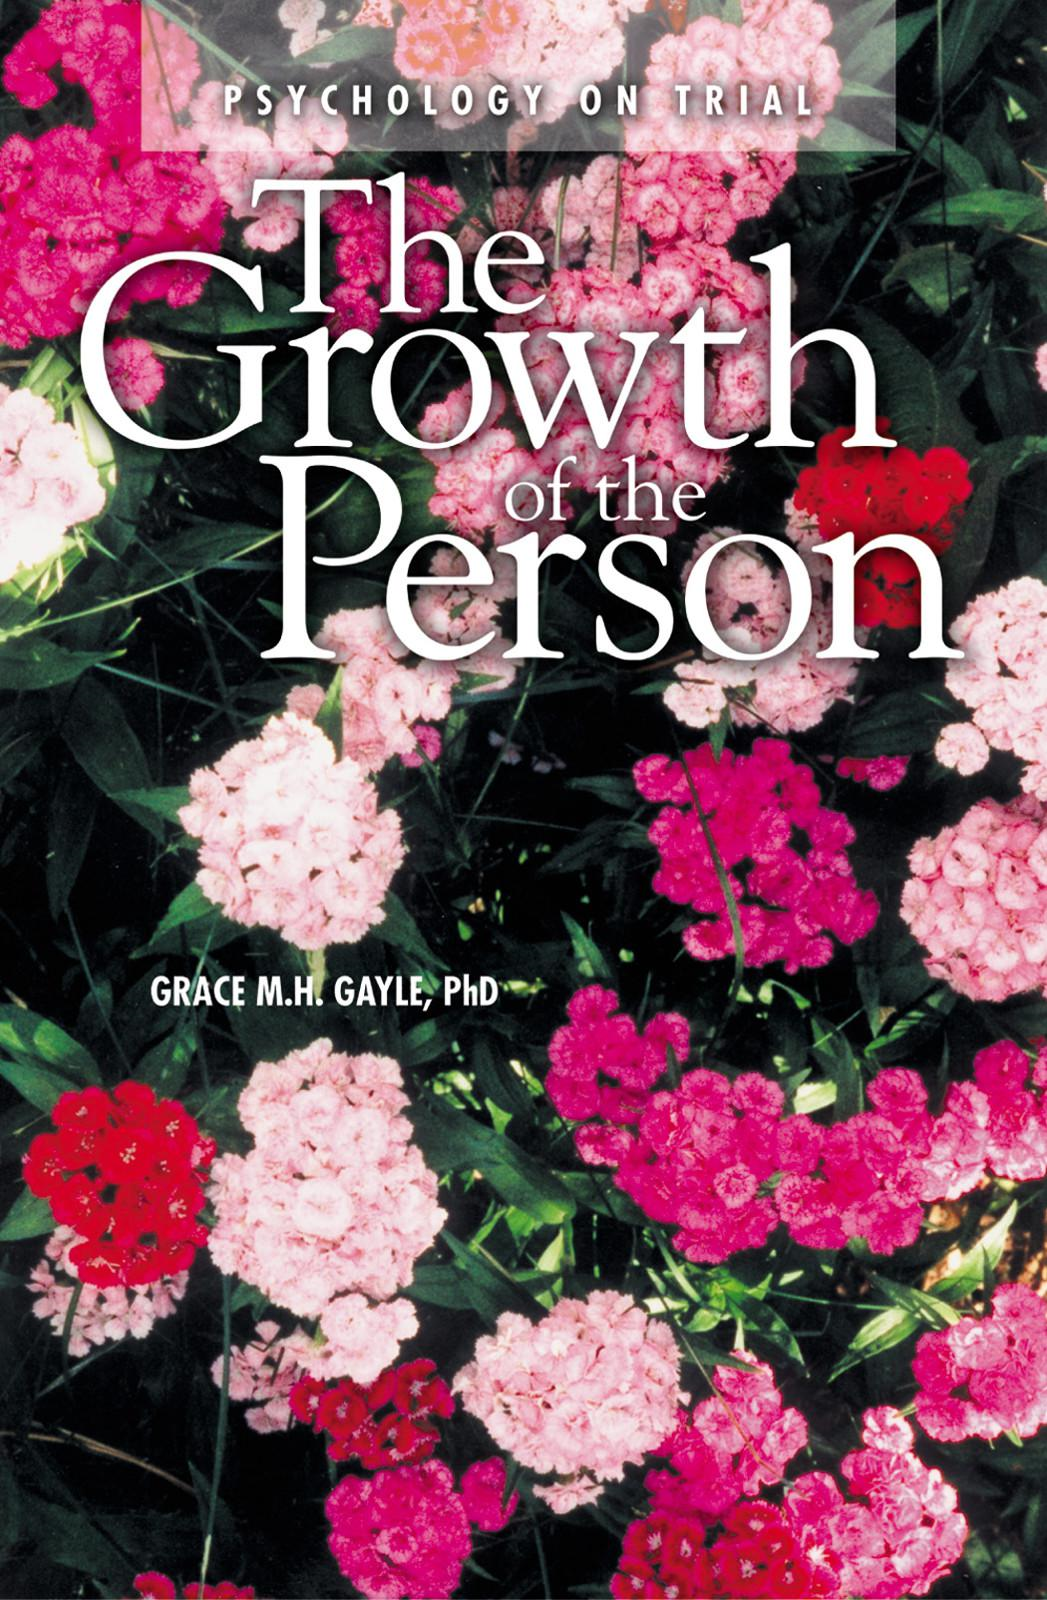 The Growth of the Person: Psychology on Trial